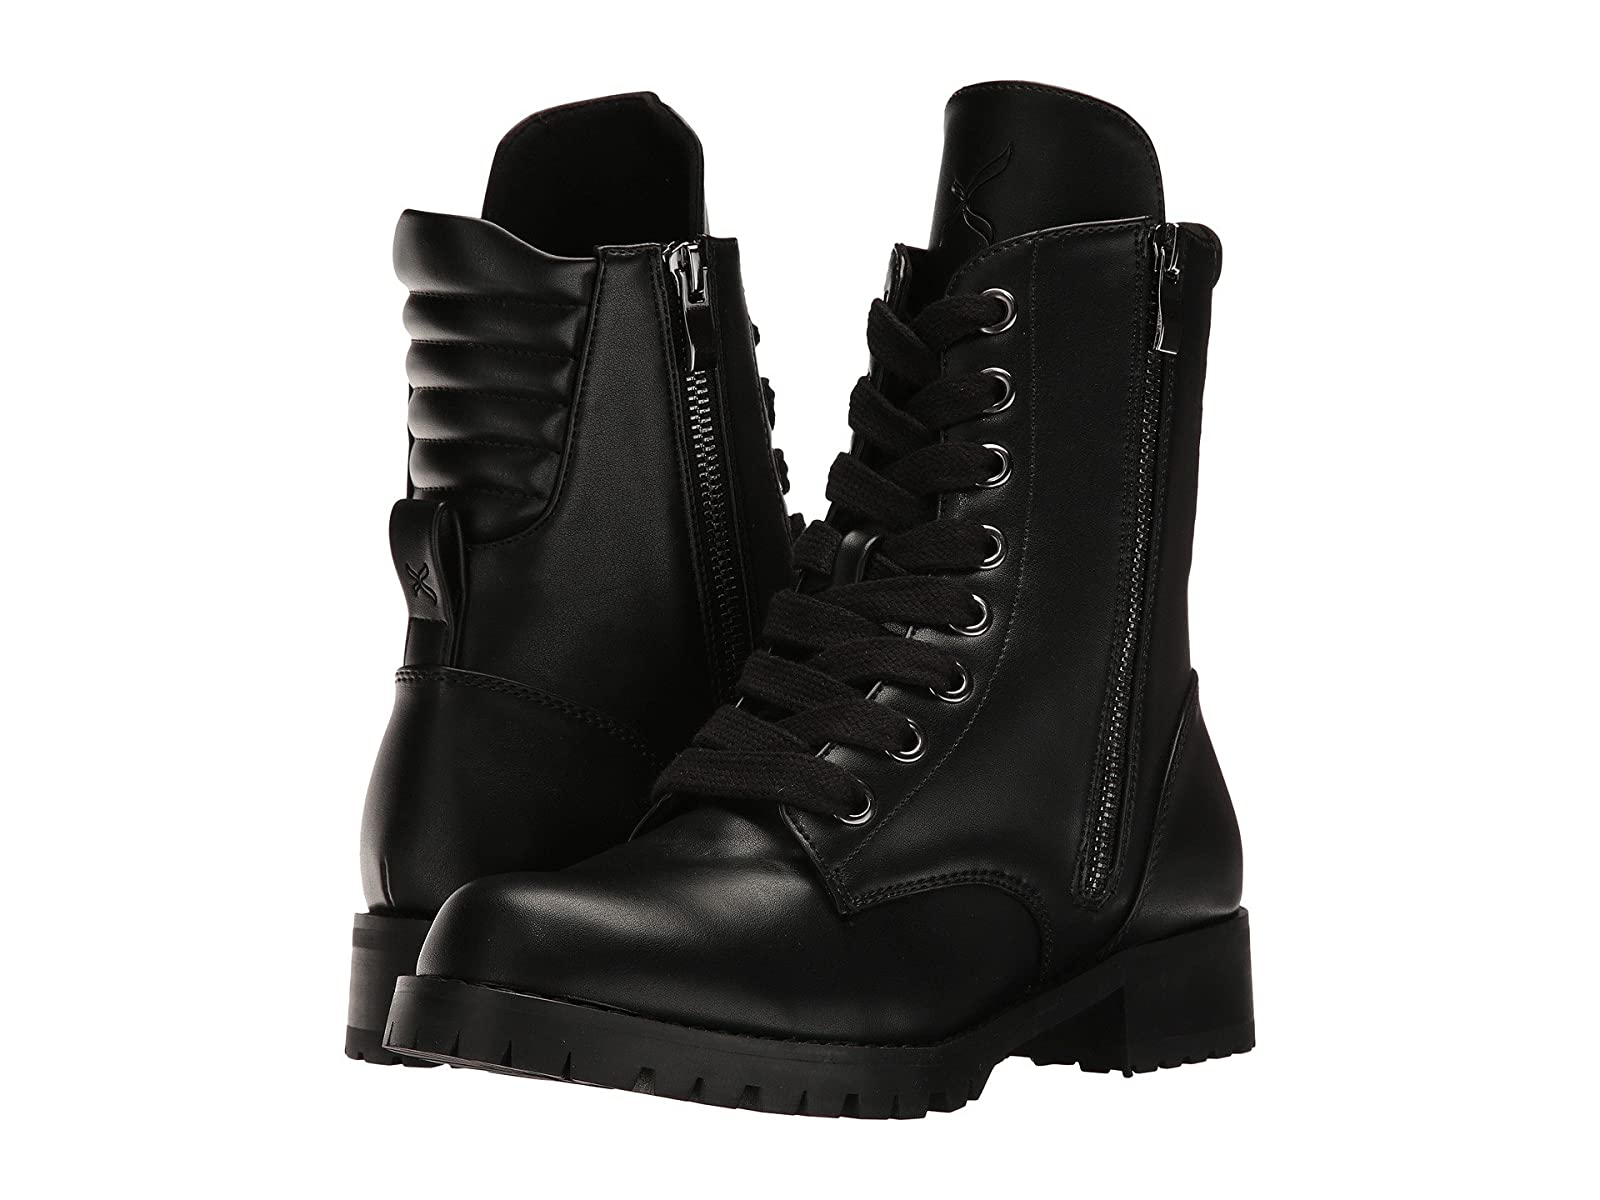 Capezio Flat Combat BootSelling fashionable and eye-catching shoes